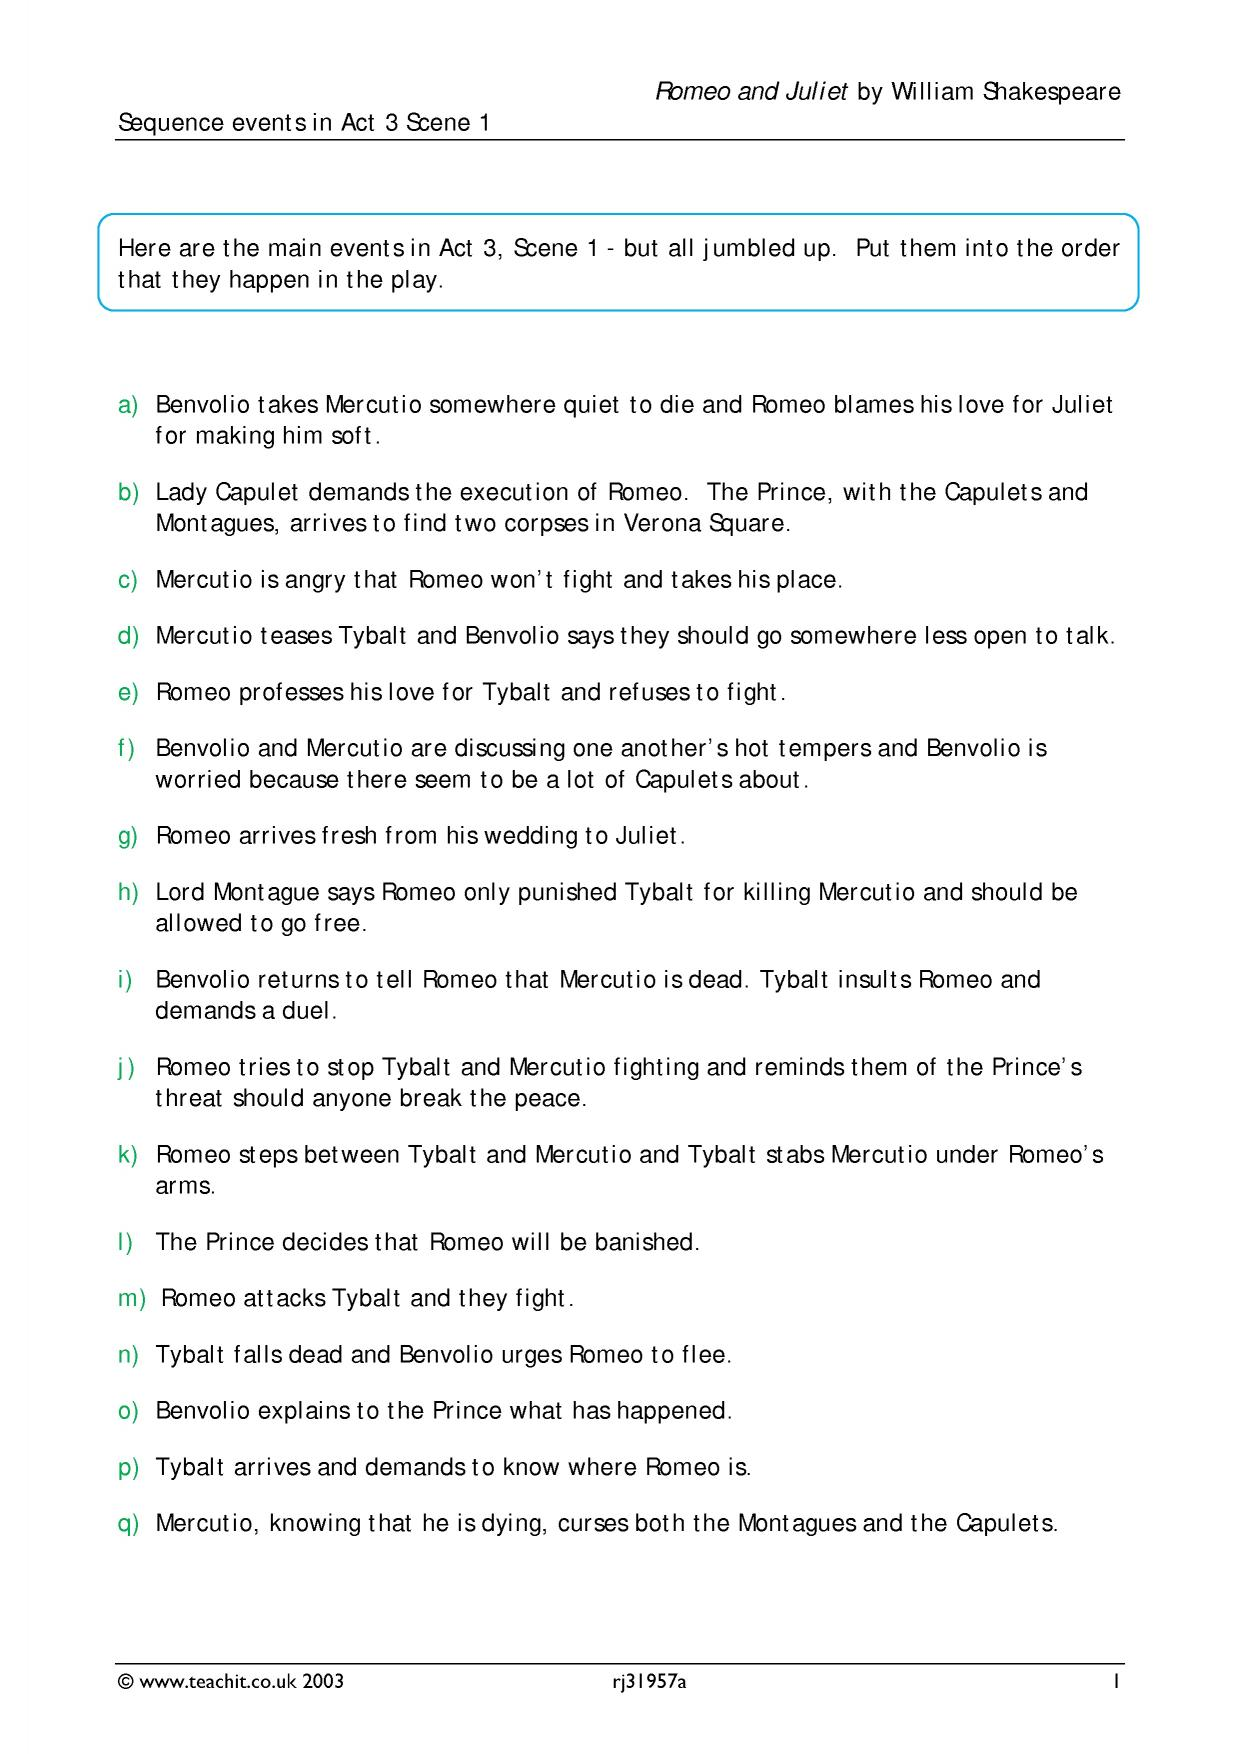 act 3 scene 1 romeo and juliet essay question 3 essay question: explore how shakespeare presents the treatment of women in act 3, scene 1: and exiles romeo act 3, scene 2: juliet longs for the coming of night and romeo the nurse appears.